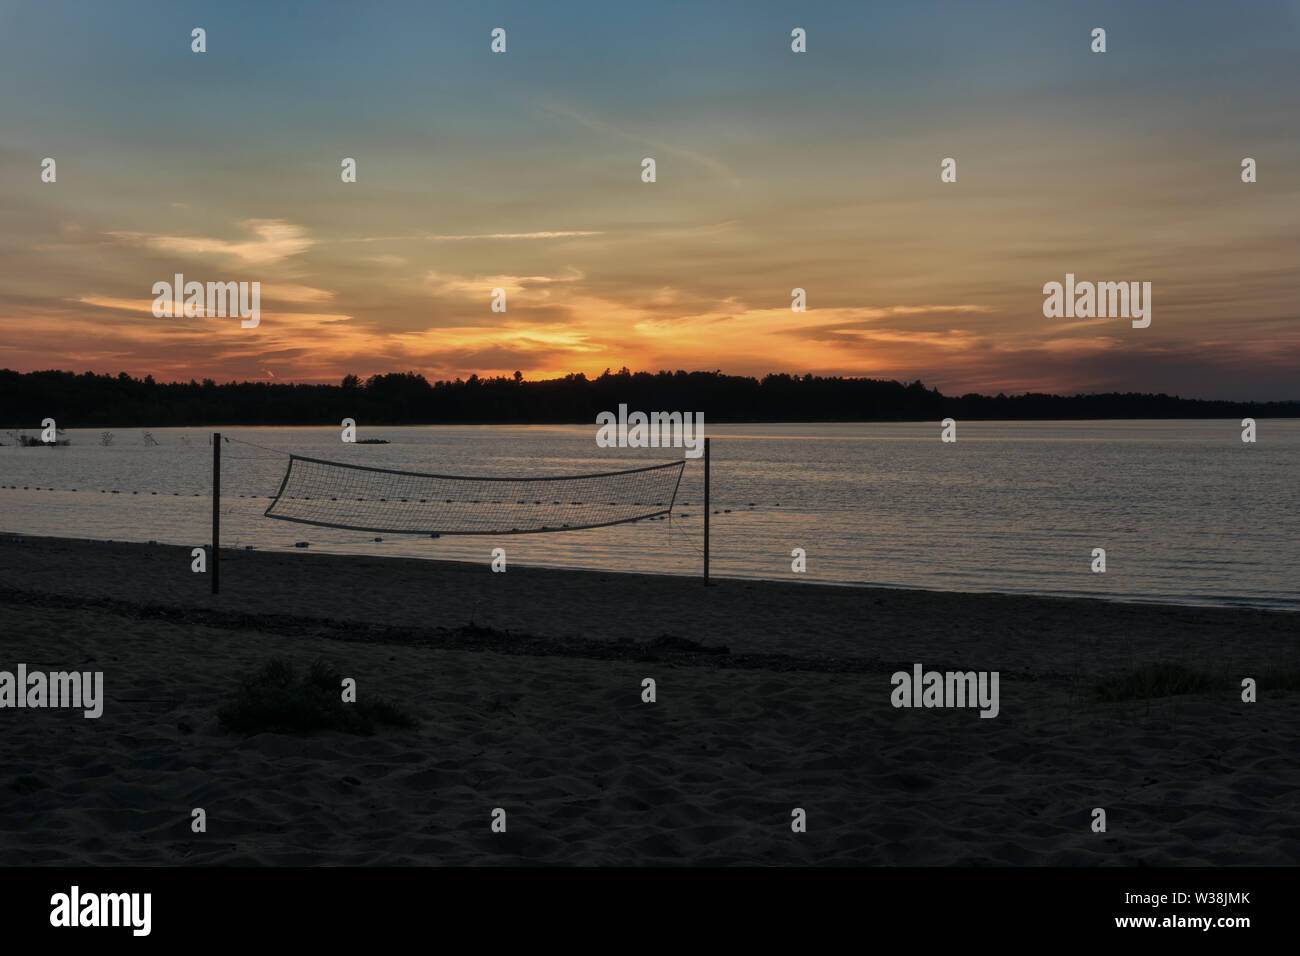 A beautiful sunset at Black Bear Beach, Canada, Petawawa, in the foreground a volleyball net, Stock Photo